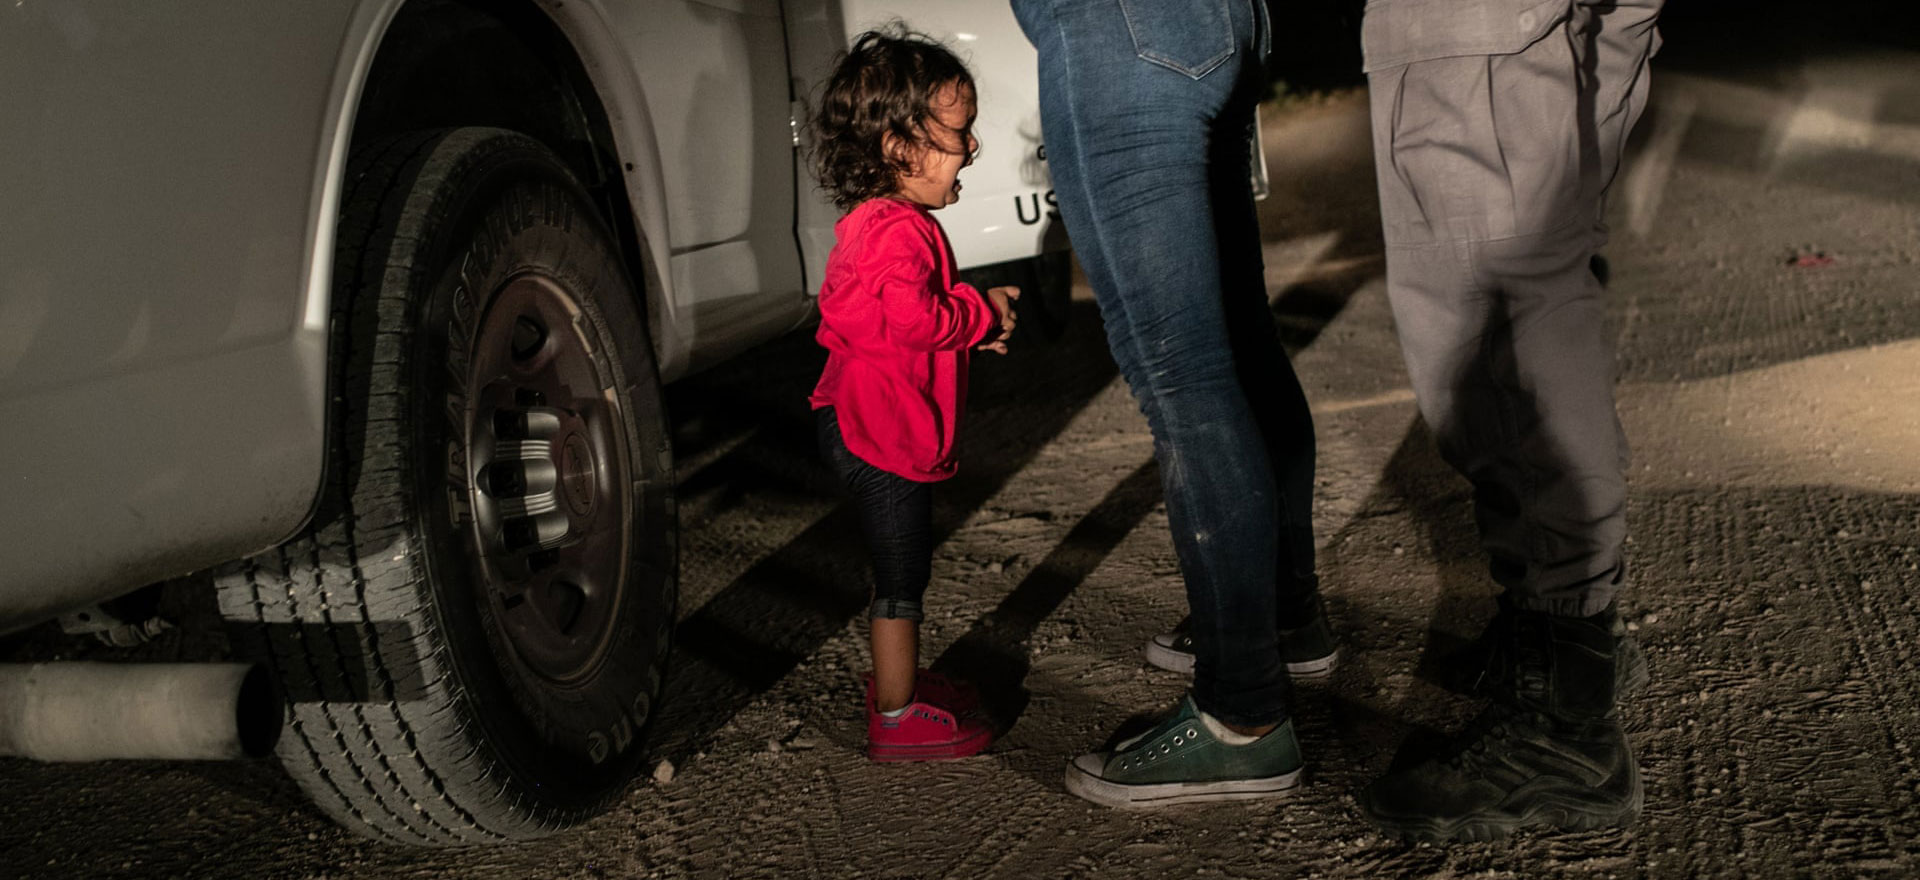 The World Press Photo 2019 competition has been resolved. Some of the awarded photos have changed the world